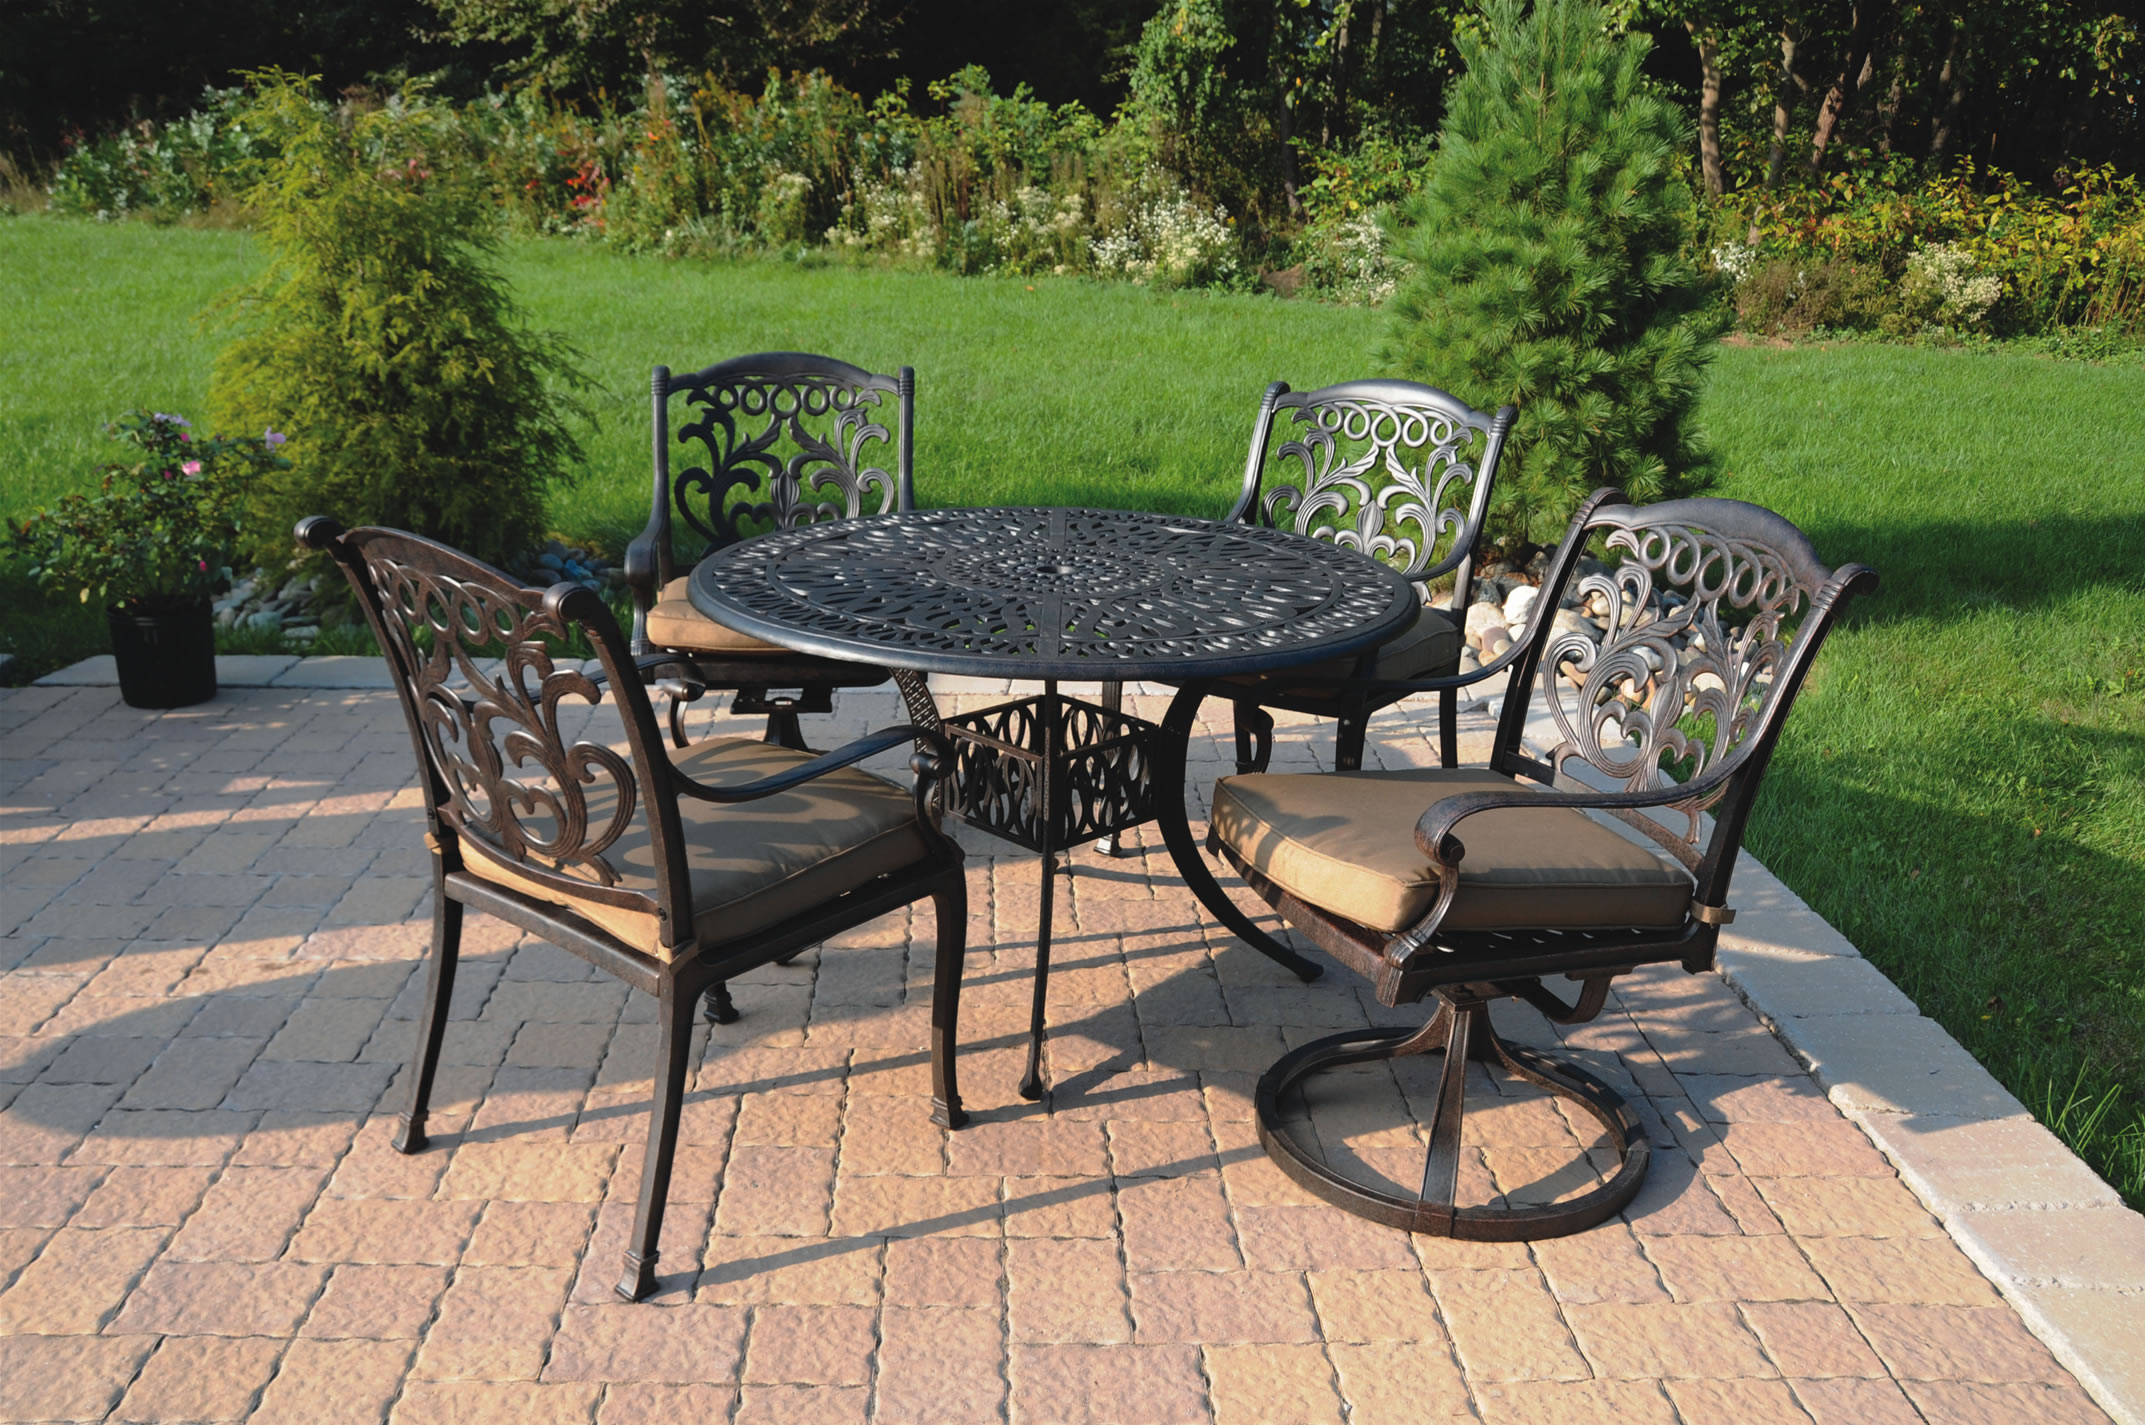 Patio furniture dining set cast aluminum 5pc valencia for Metal patio furniture sets